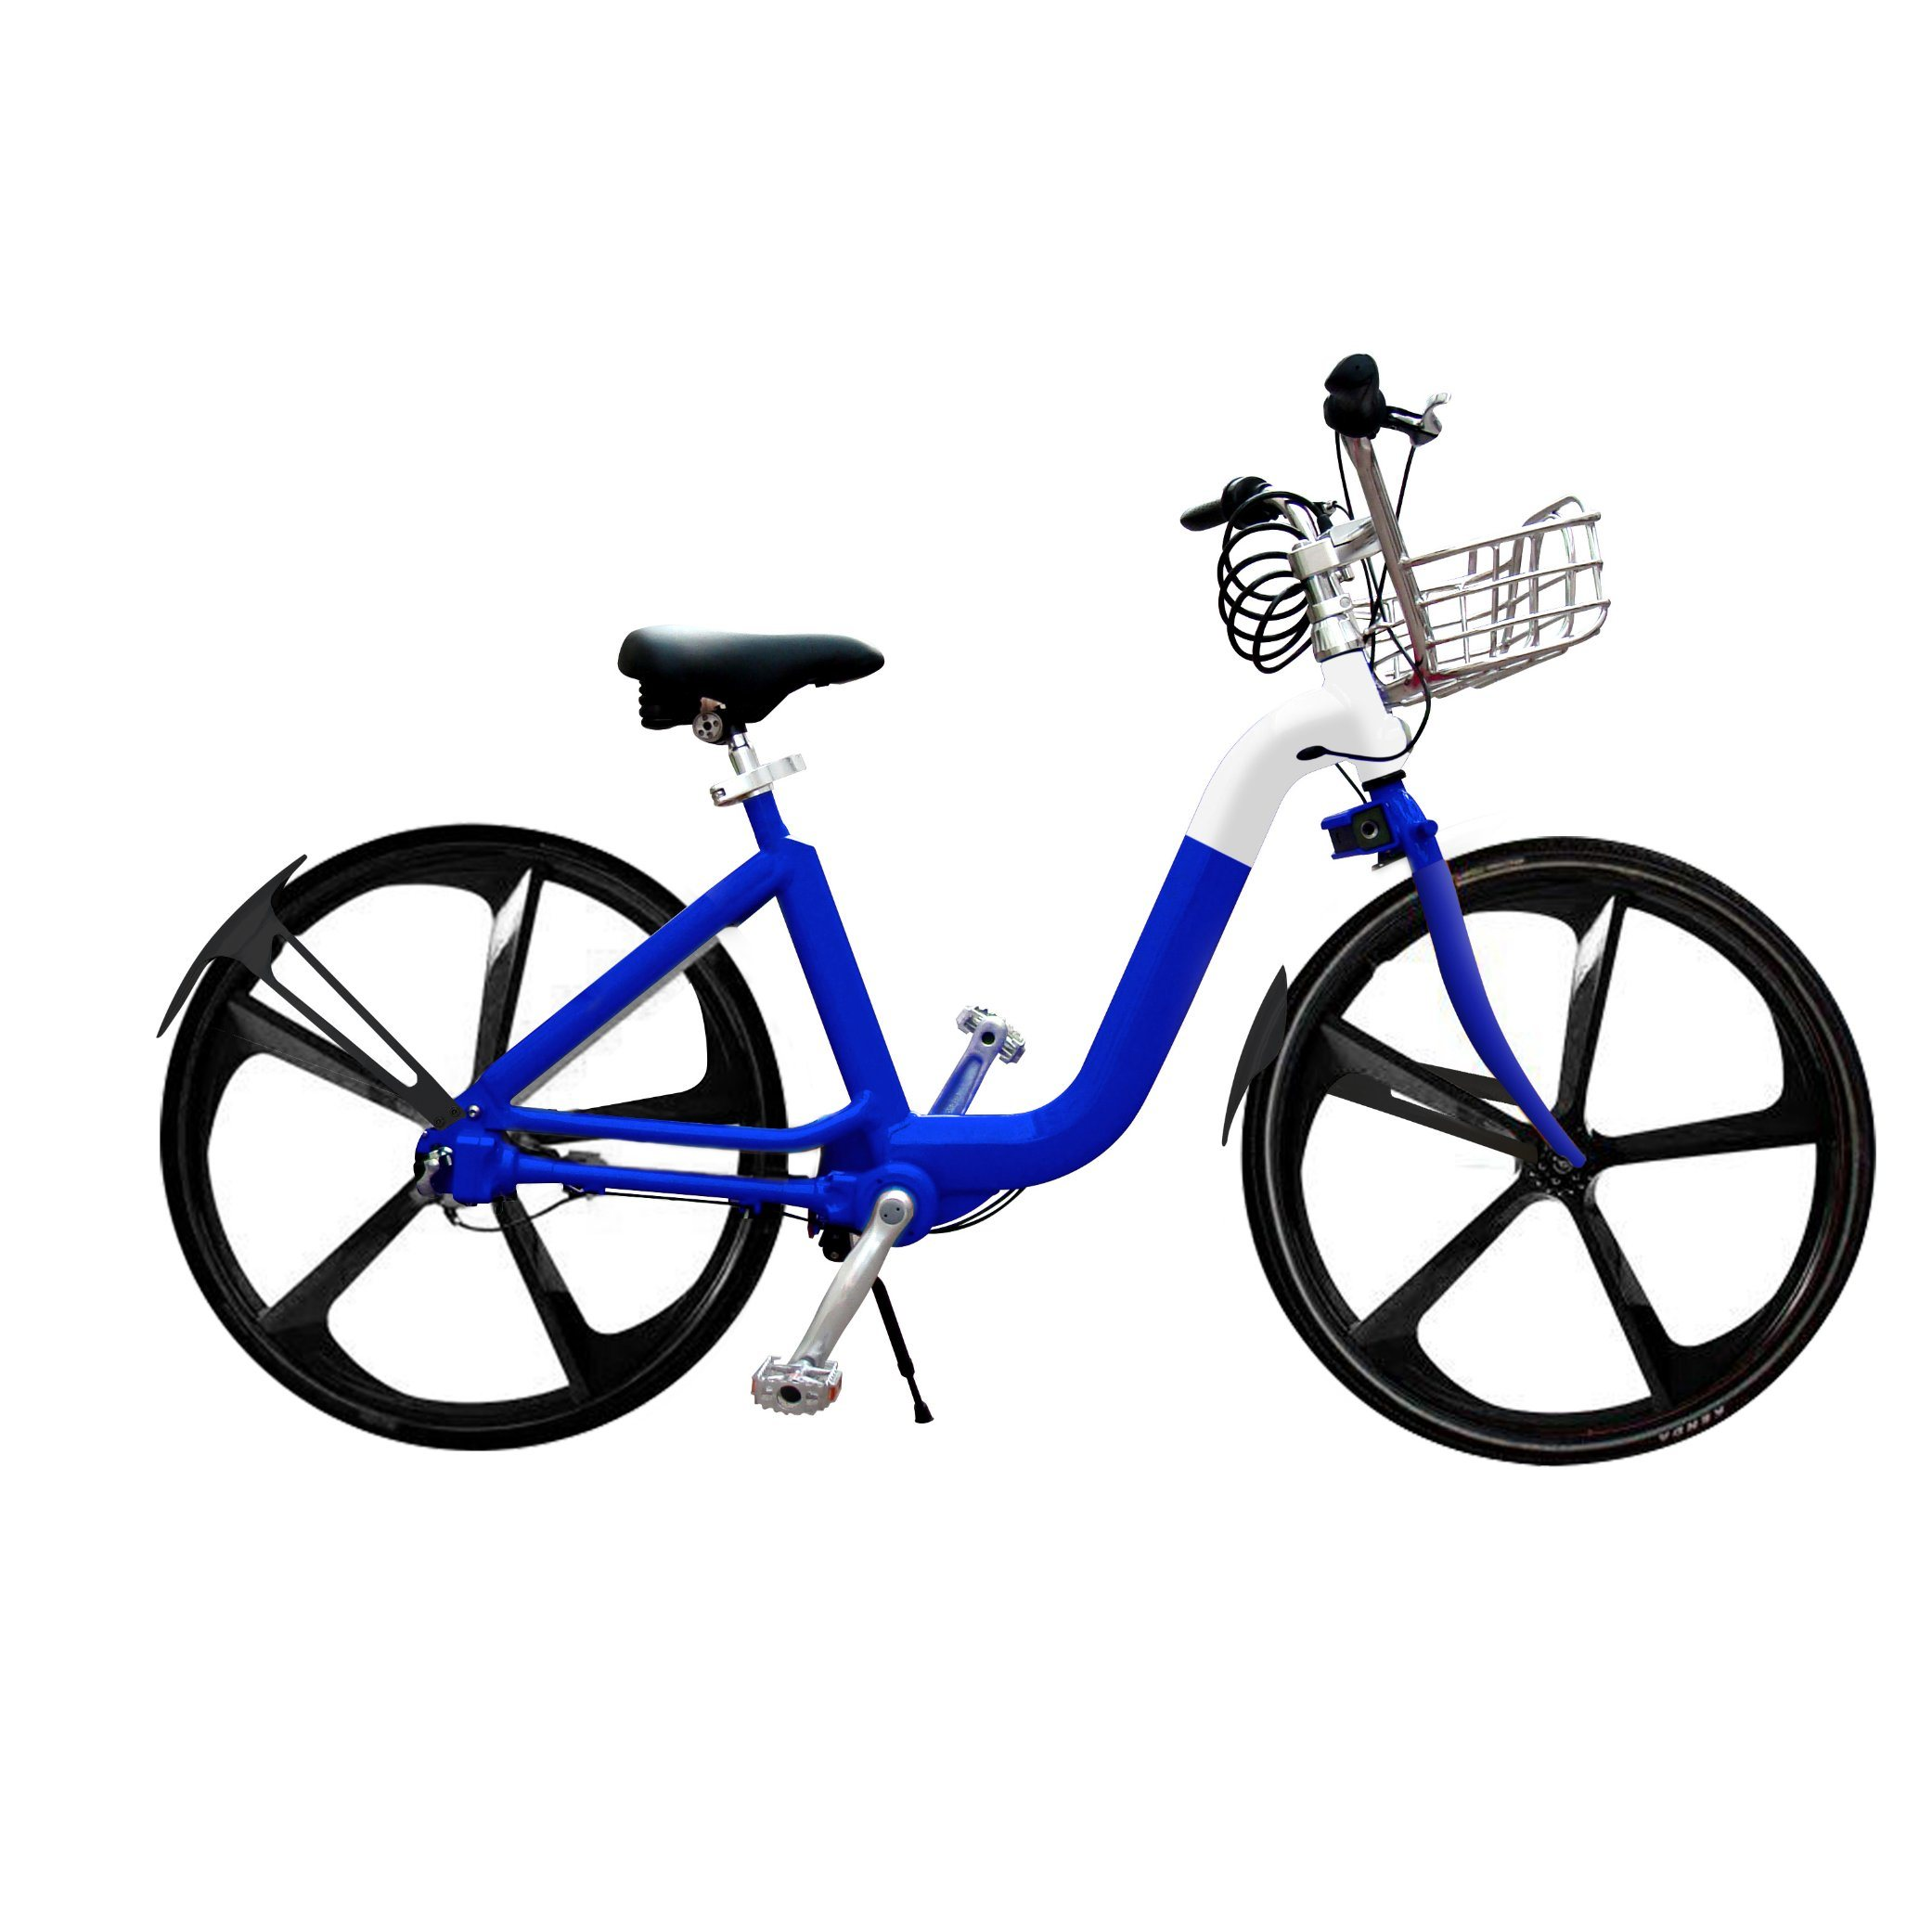 Hummer Bicycle Price Shaft Drive Urban Public Bike Sharing System Bicycles for Rental Sale Chainless No Maintenance Cost